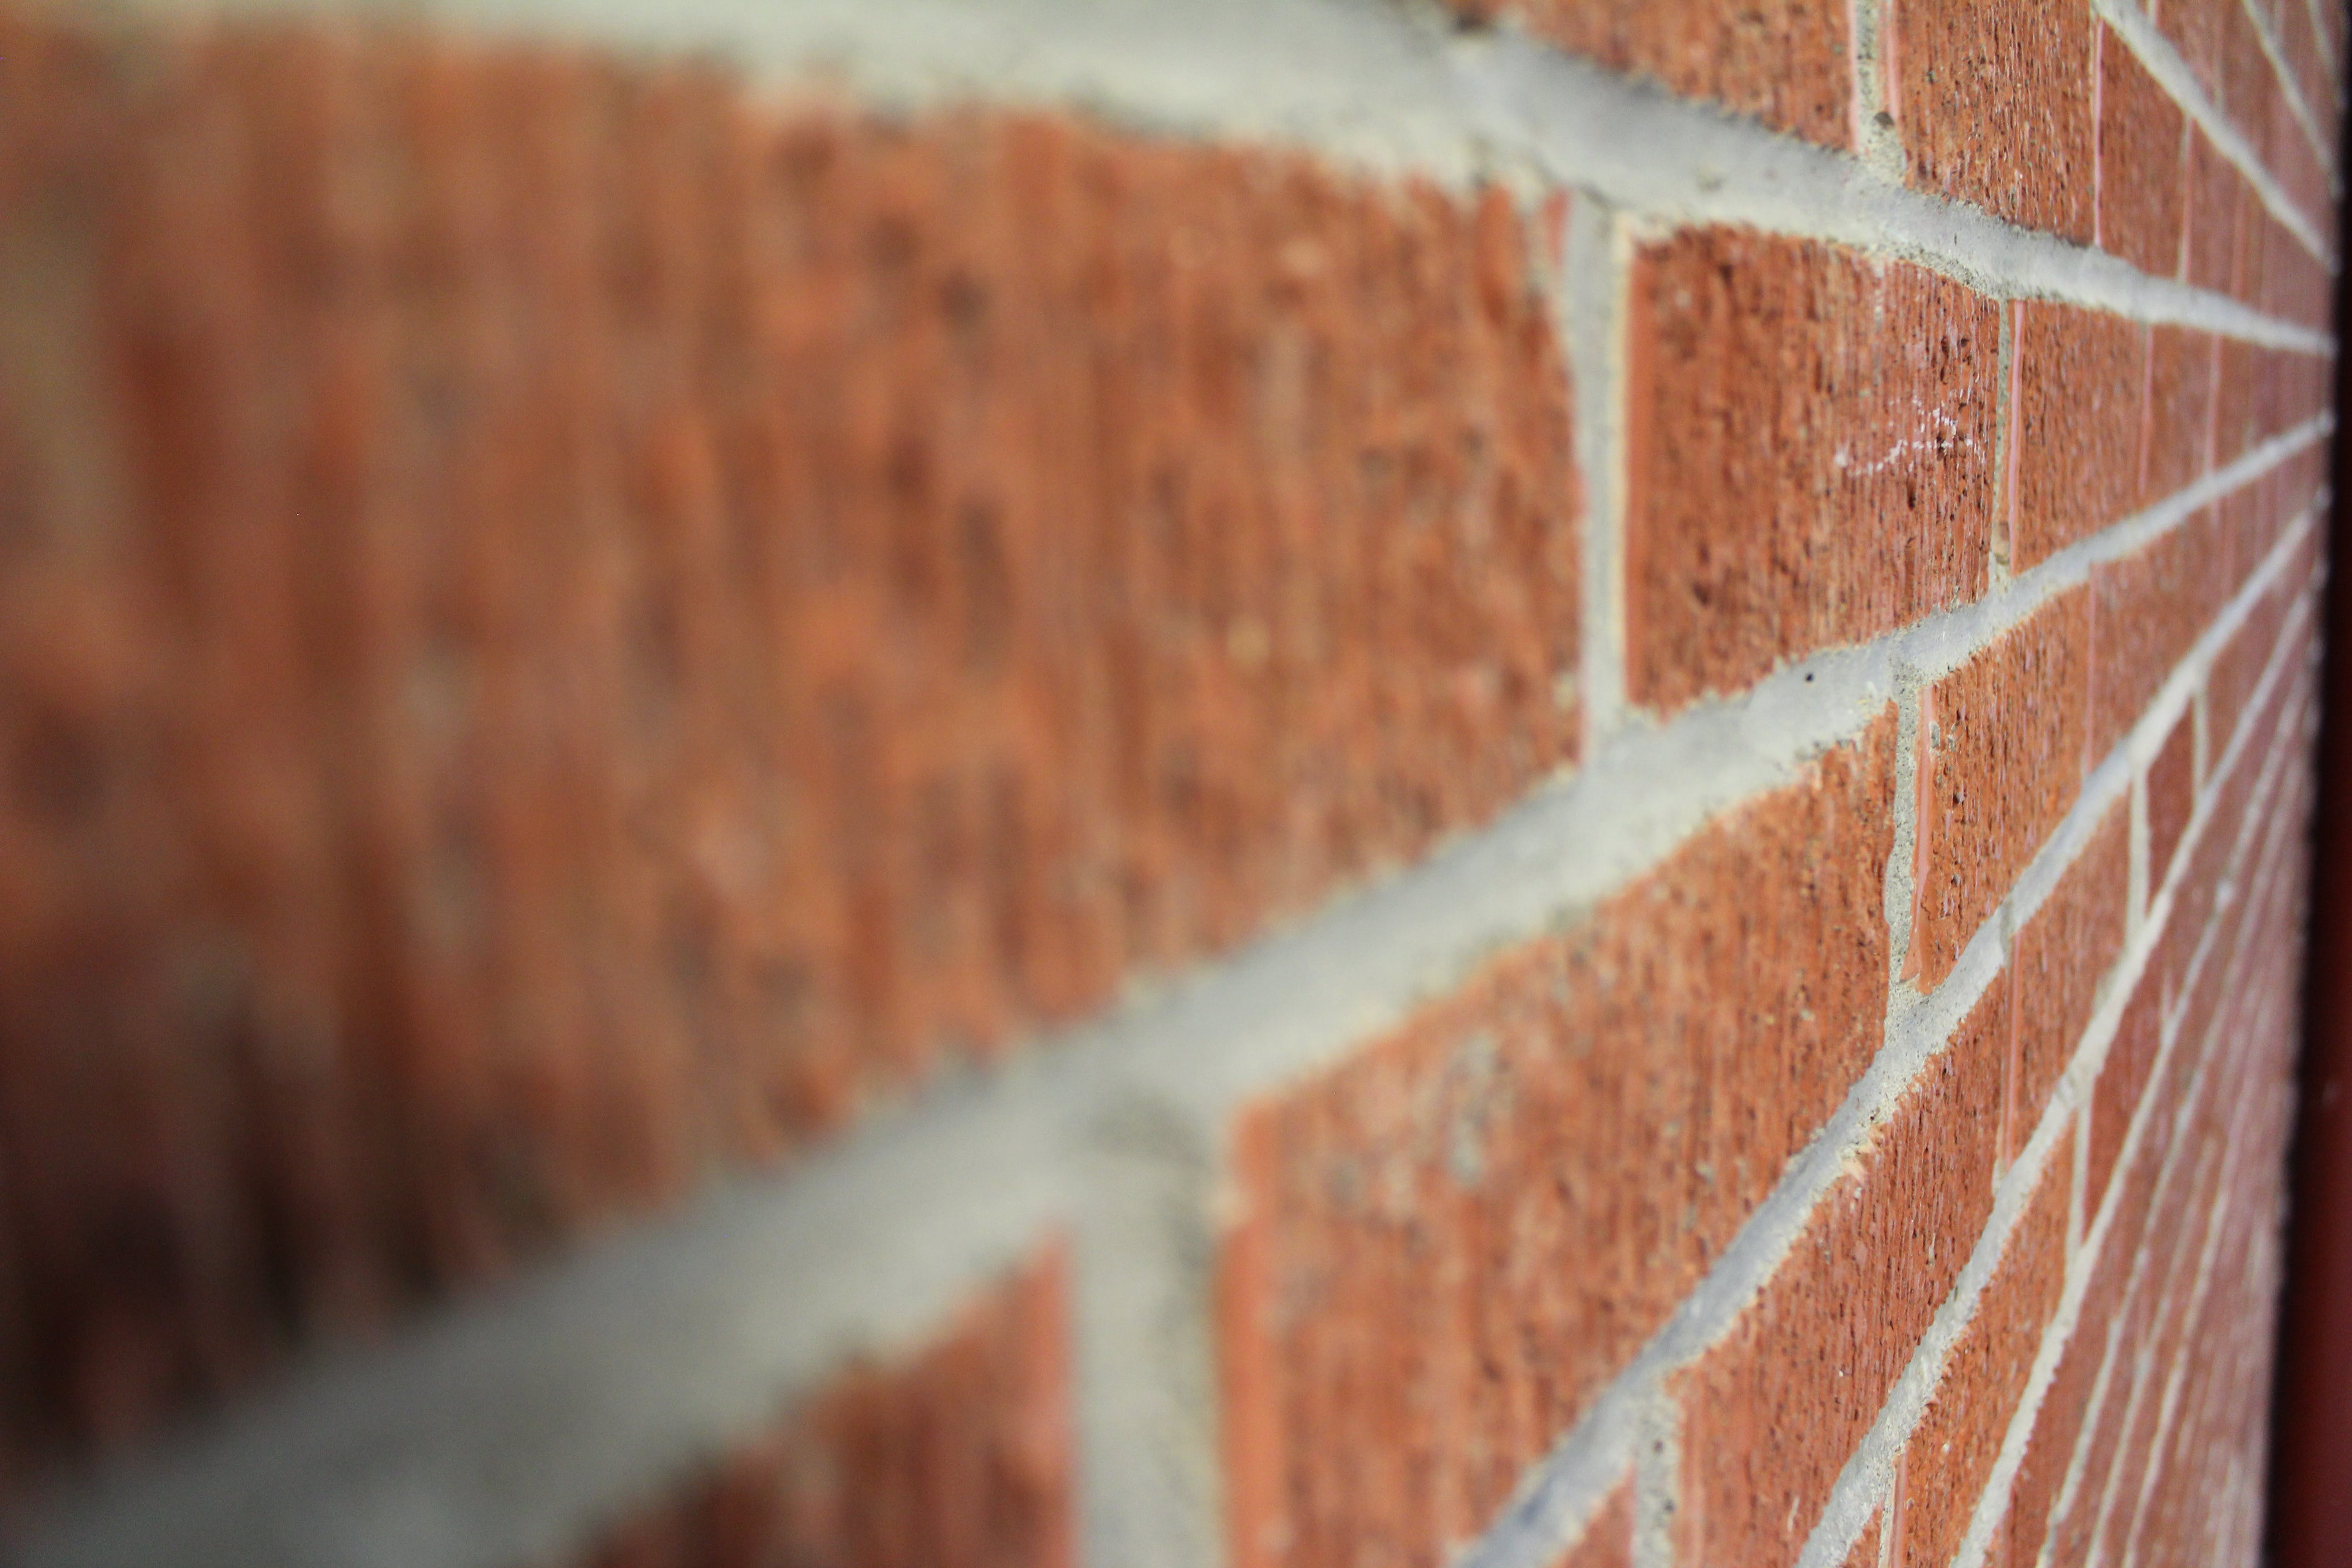 Free stock photo of abstract, background, background image, brick